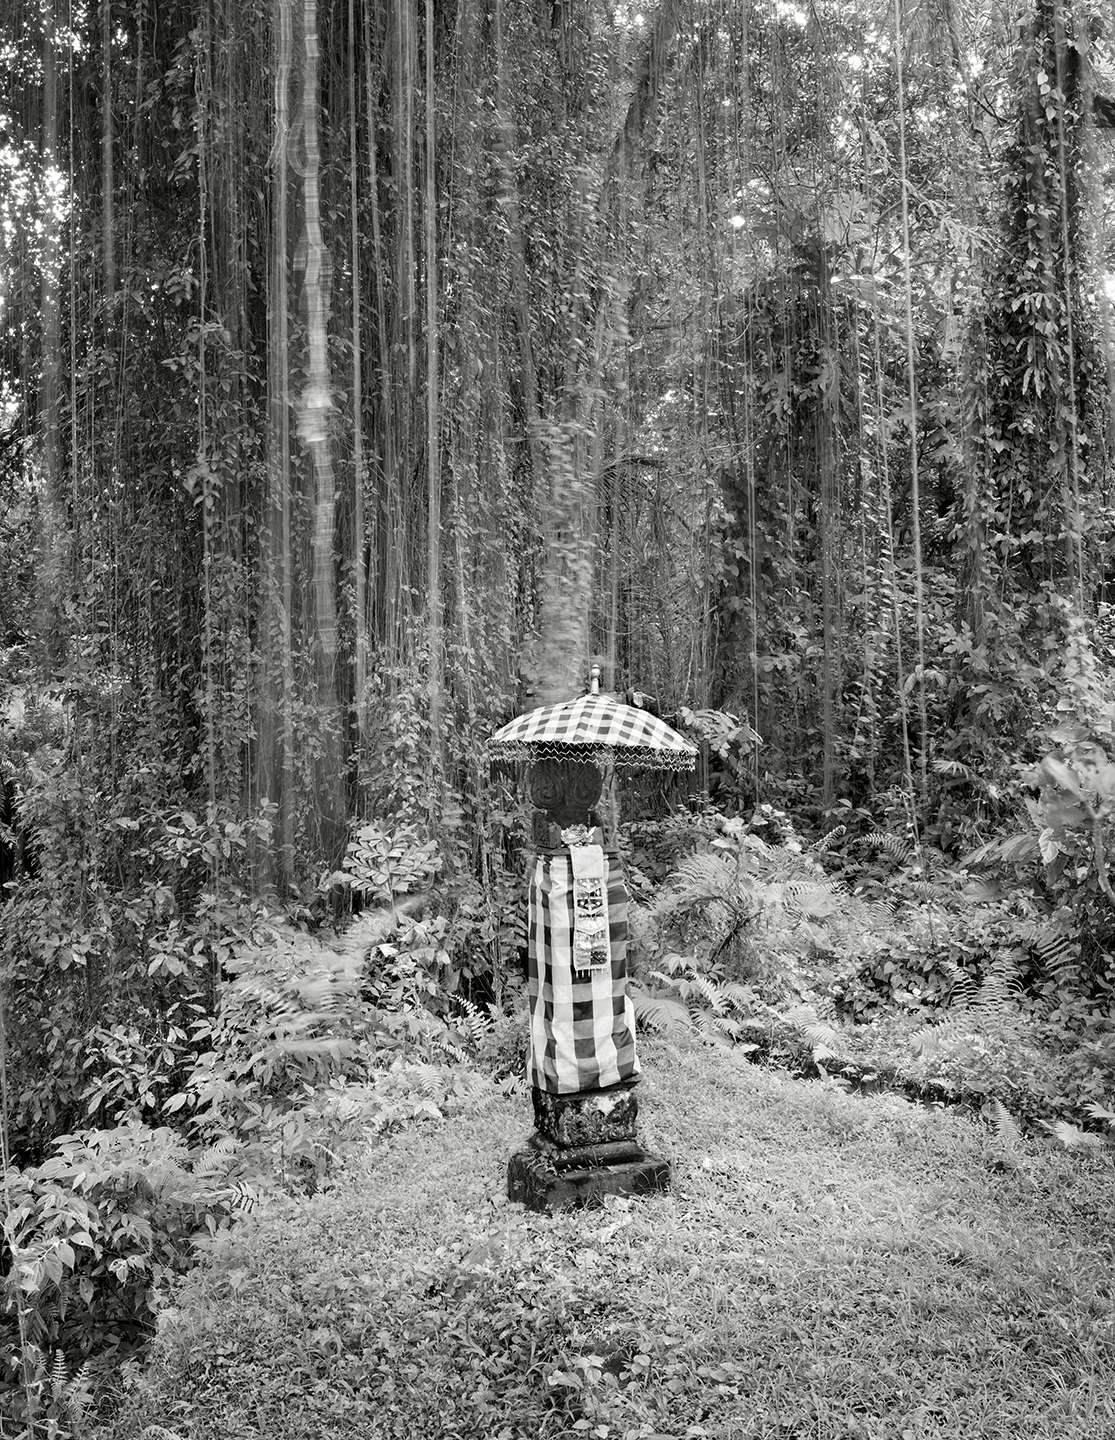 Offerings to the Trees, Bali, Indonesia - 2008 copy.jpg